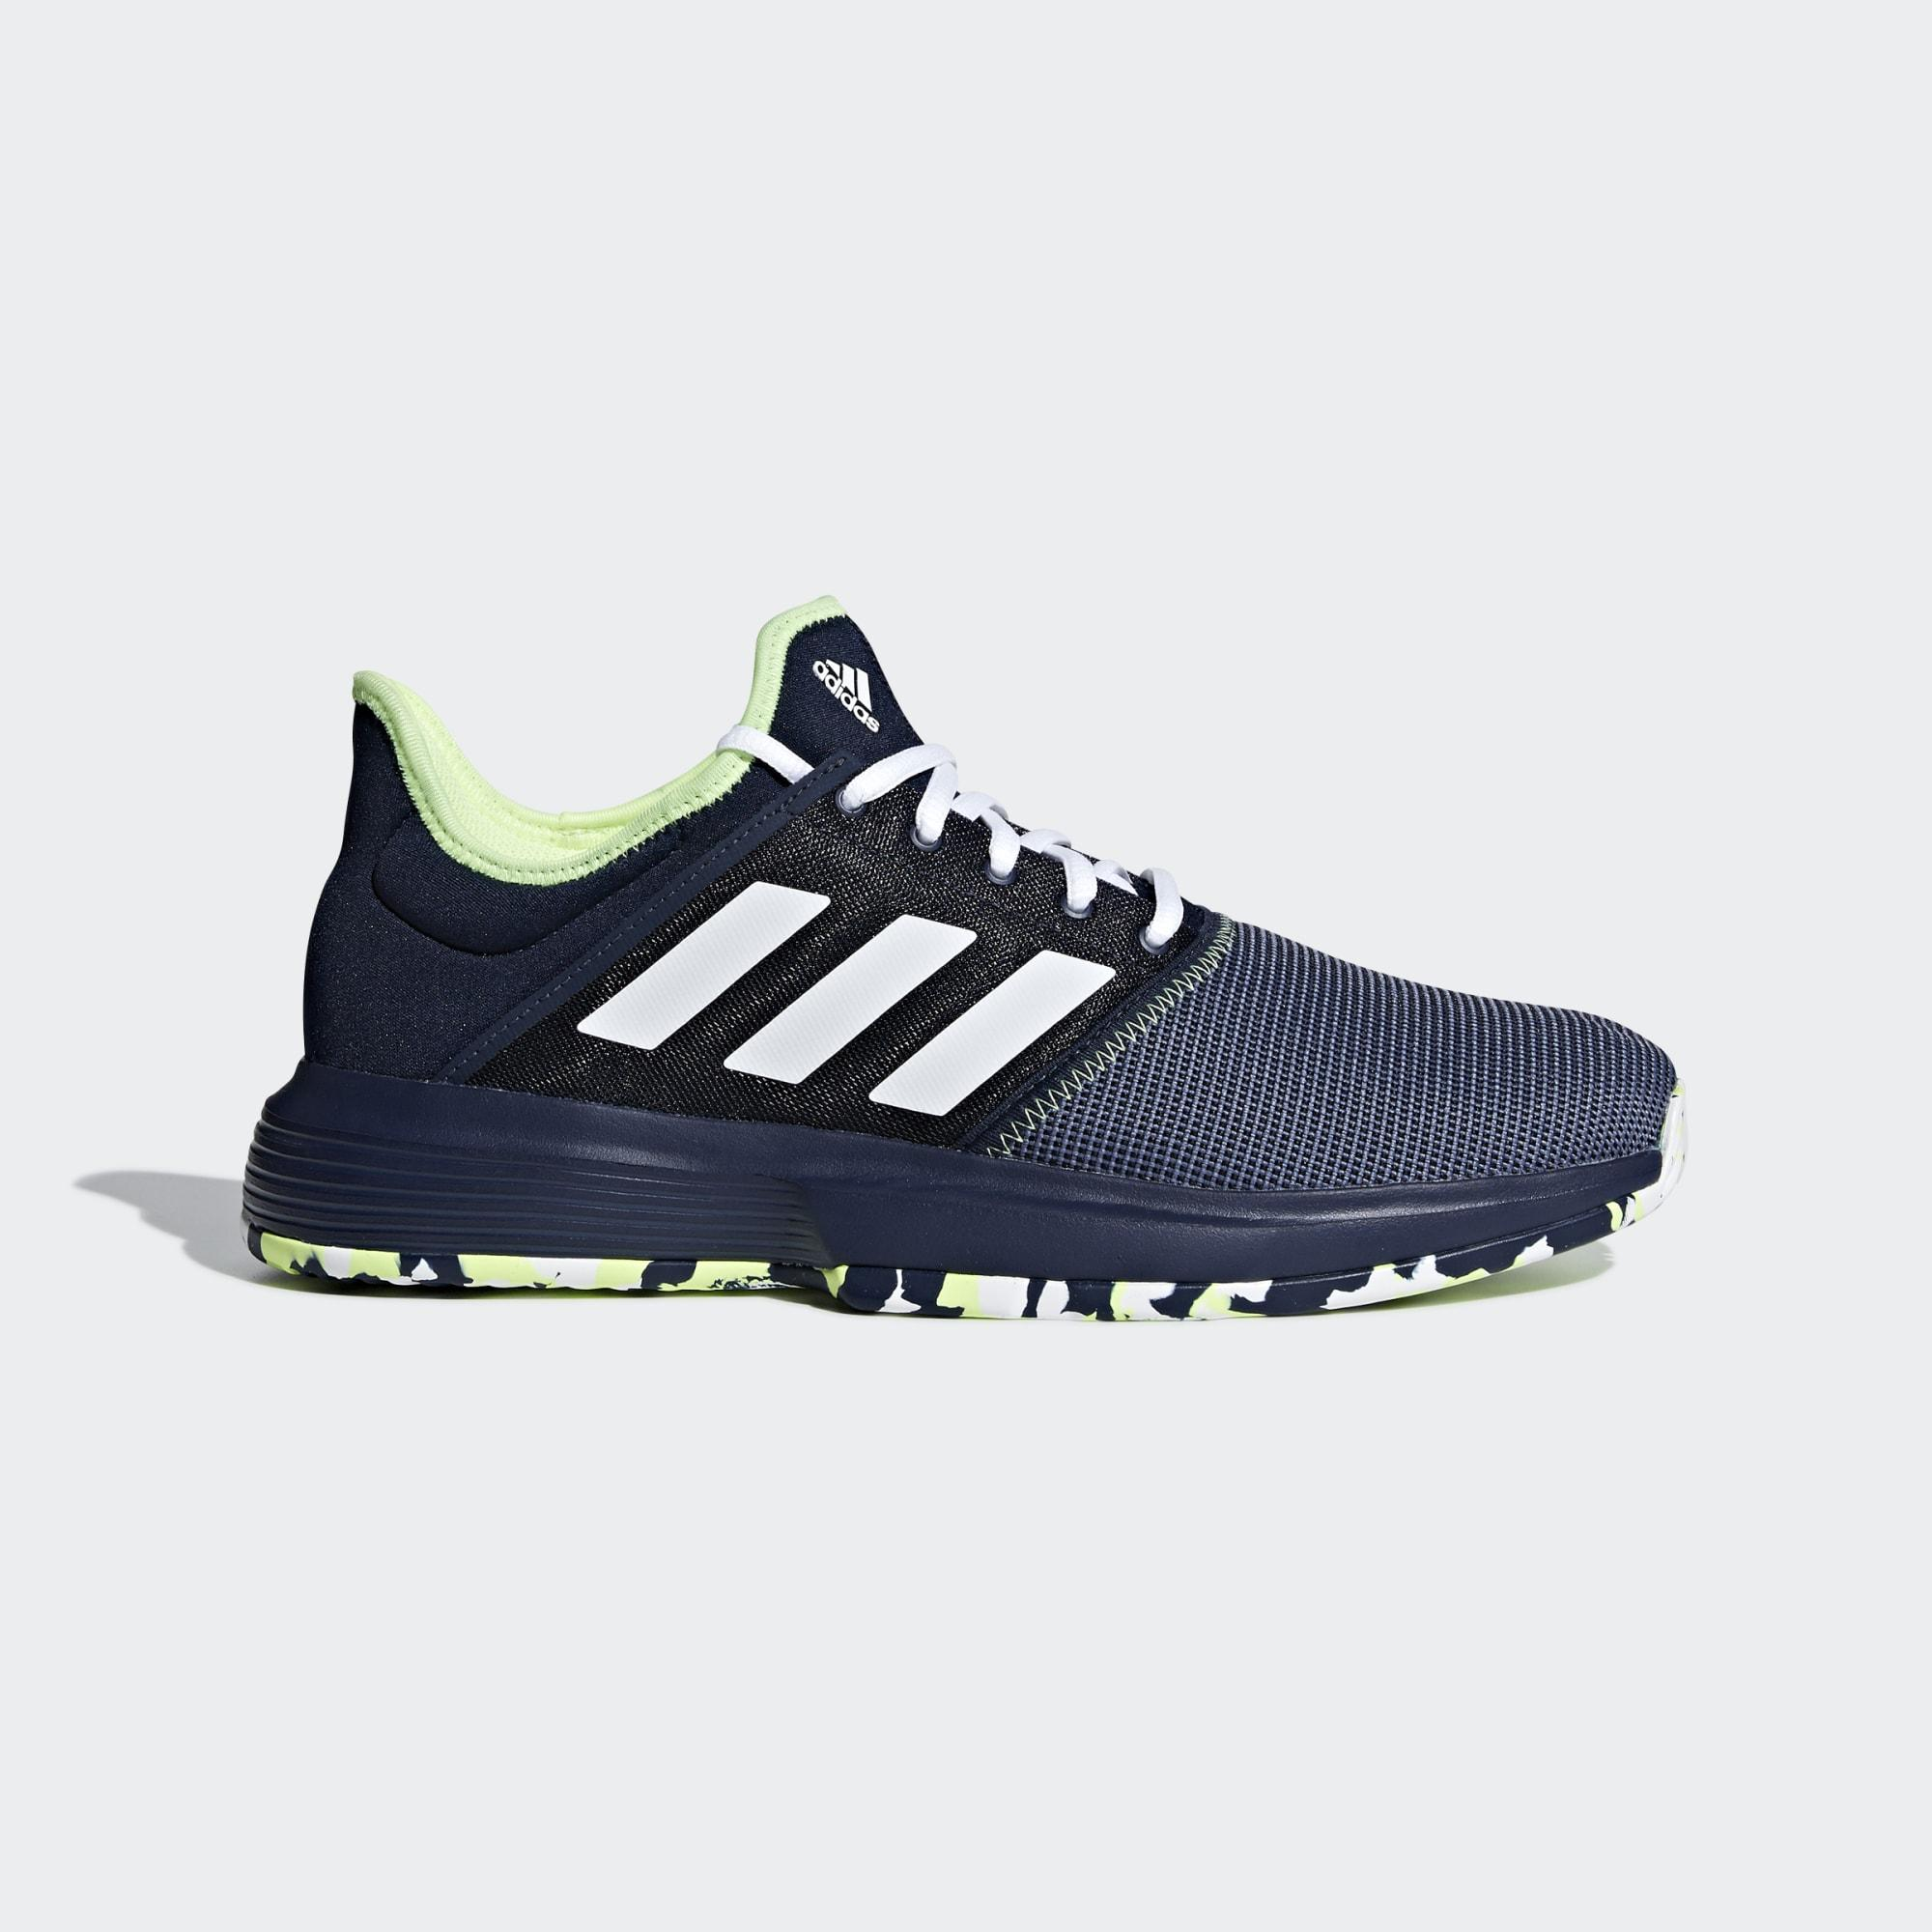 Adidas Tennis Gamecourt Multicourt Shoes Men F36713 By Lazada Retail Adidas Official Store.